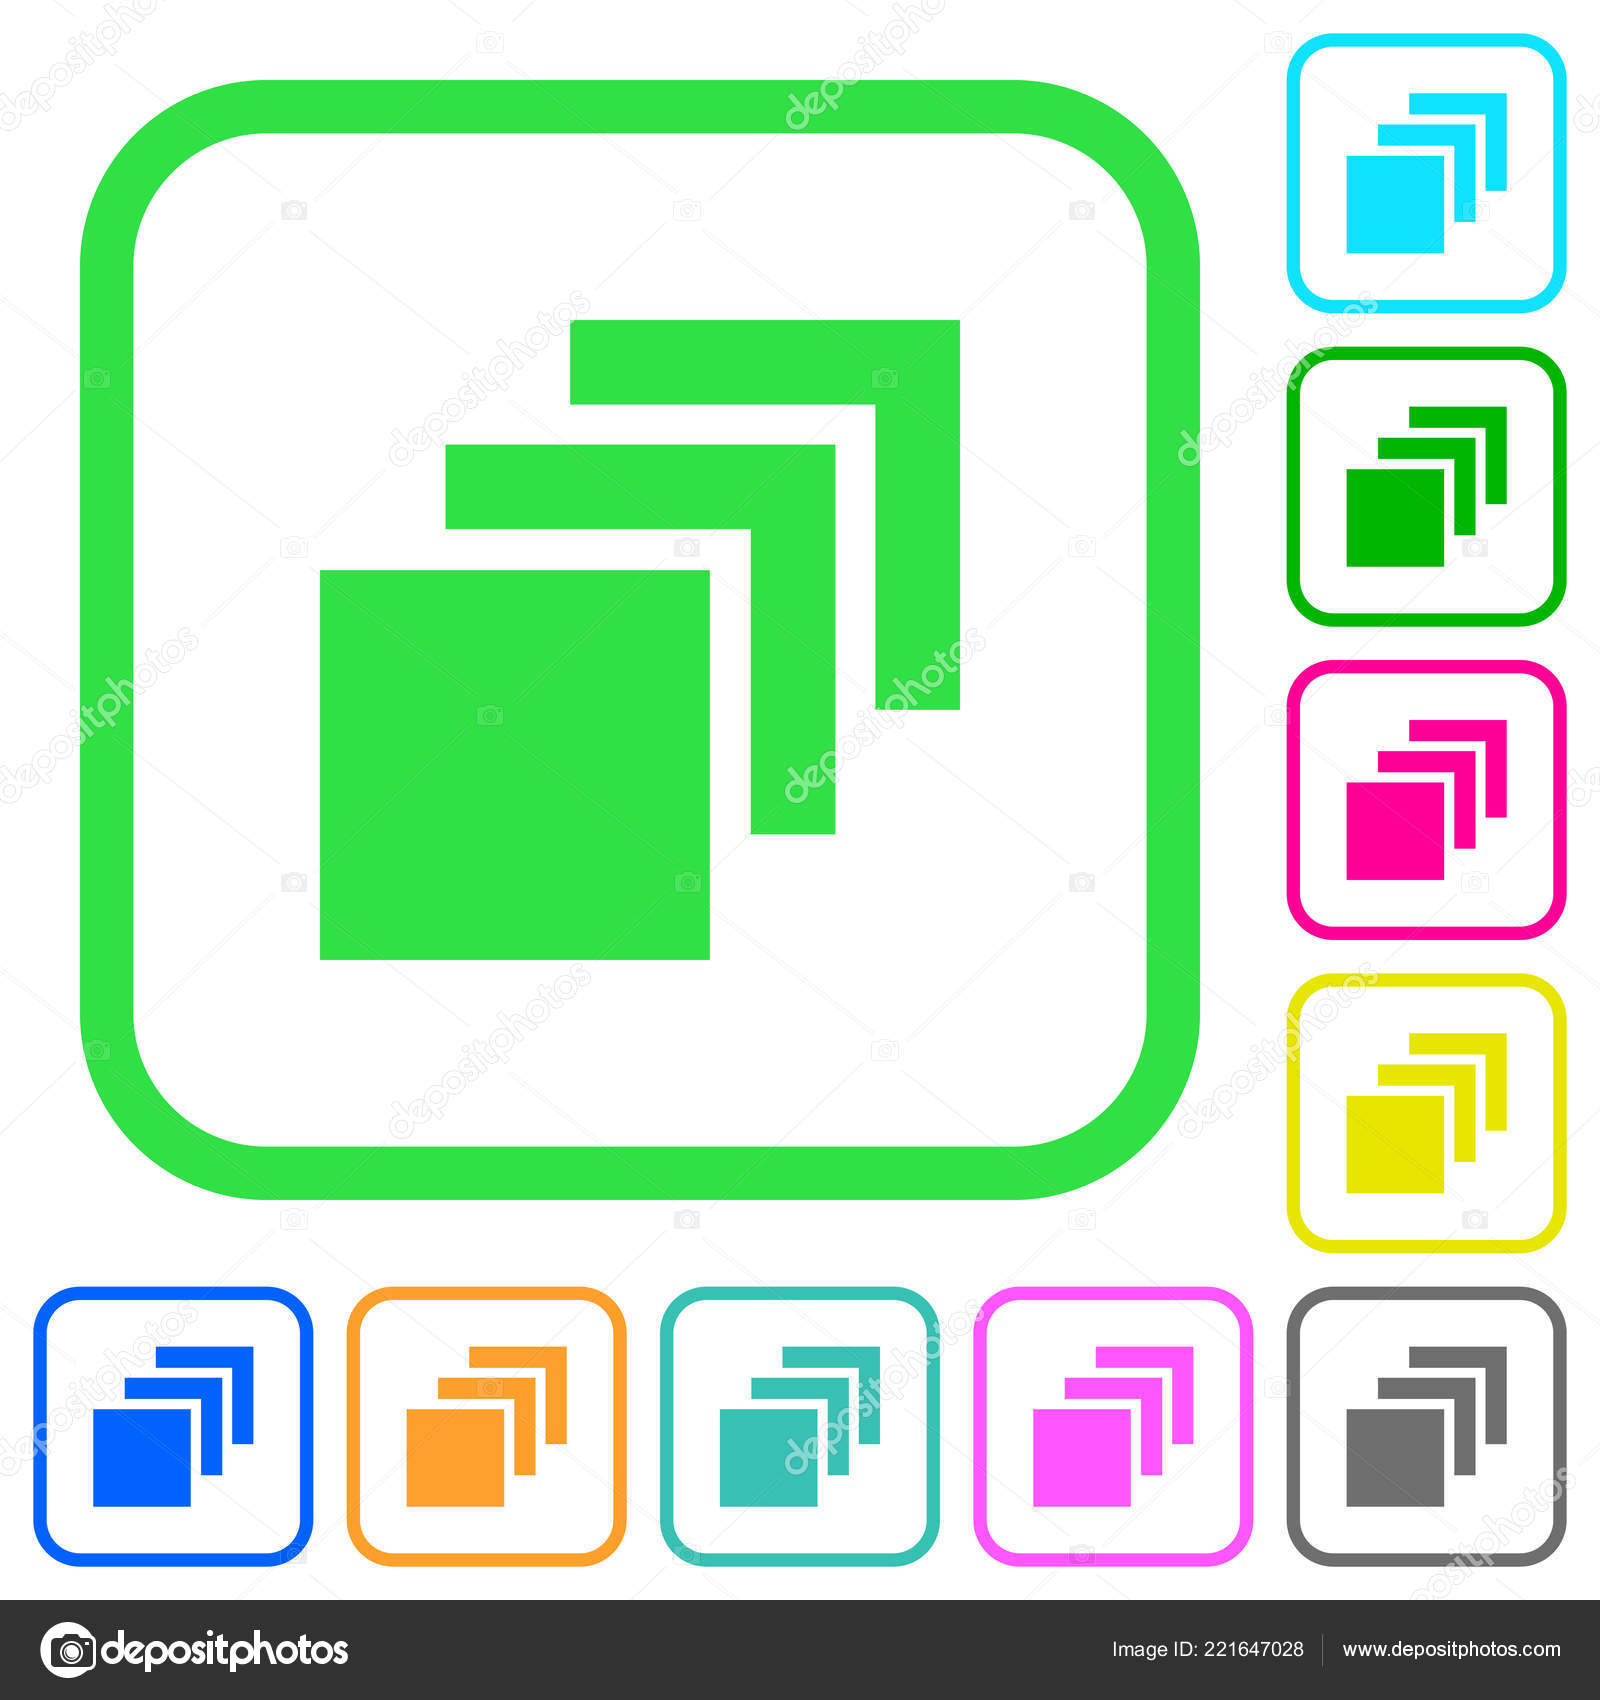 multiple canvases vivid colored flat icons curved borders white